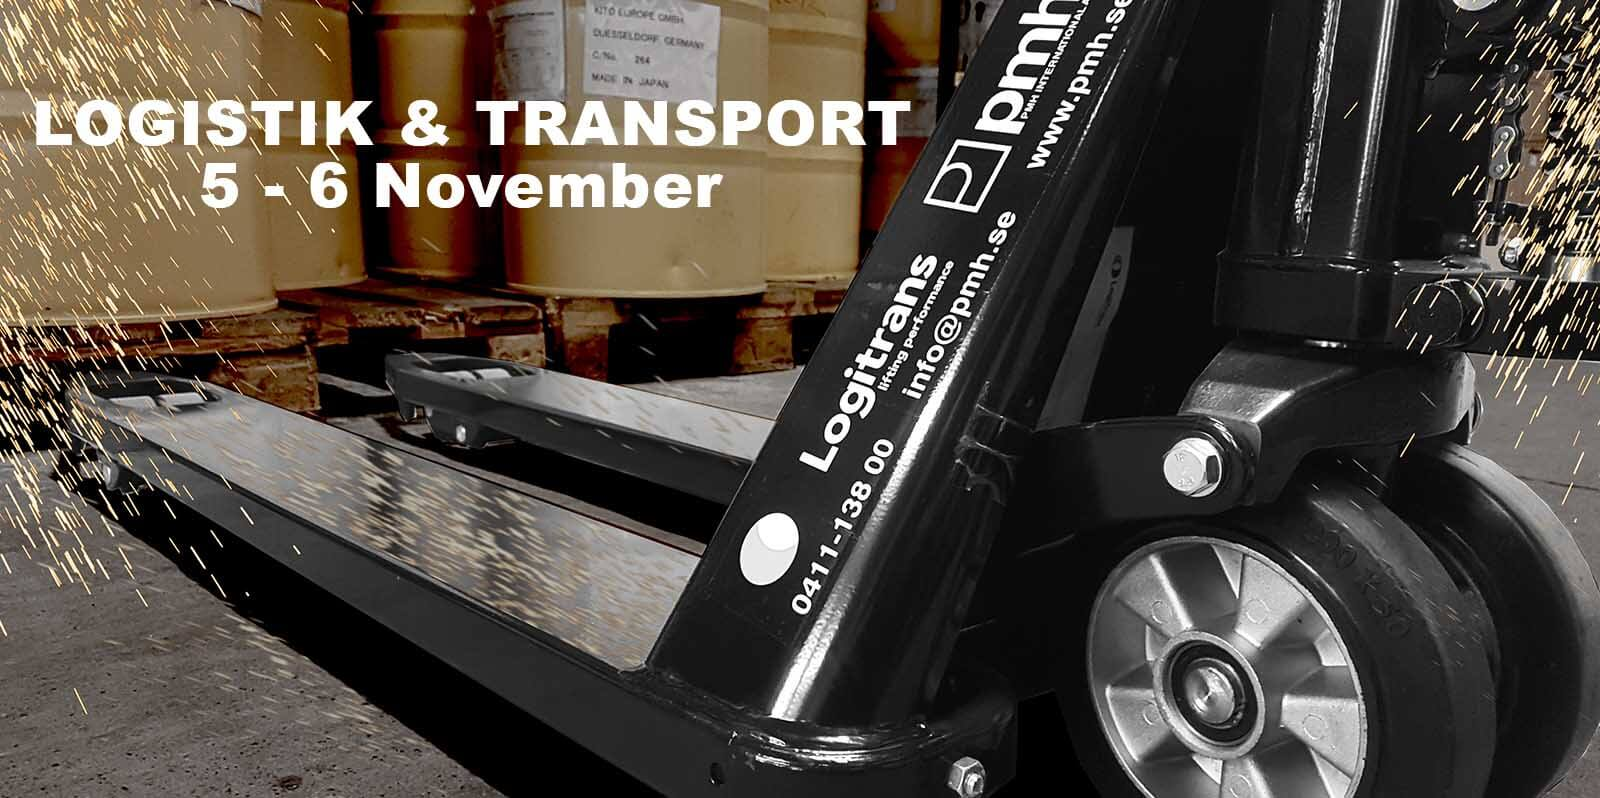 Logistik & Transport i Göteborg 5-6 November 2019